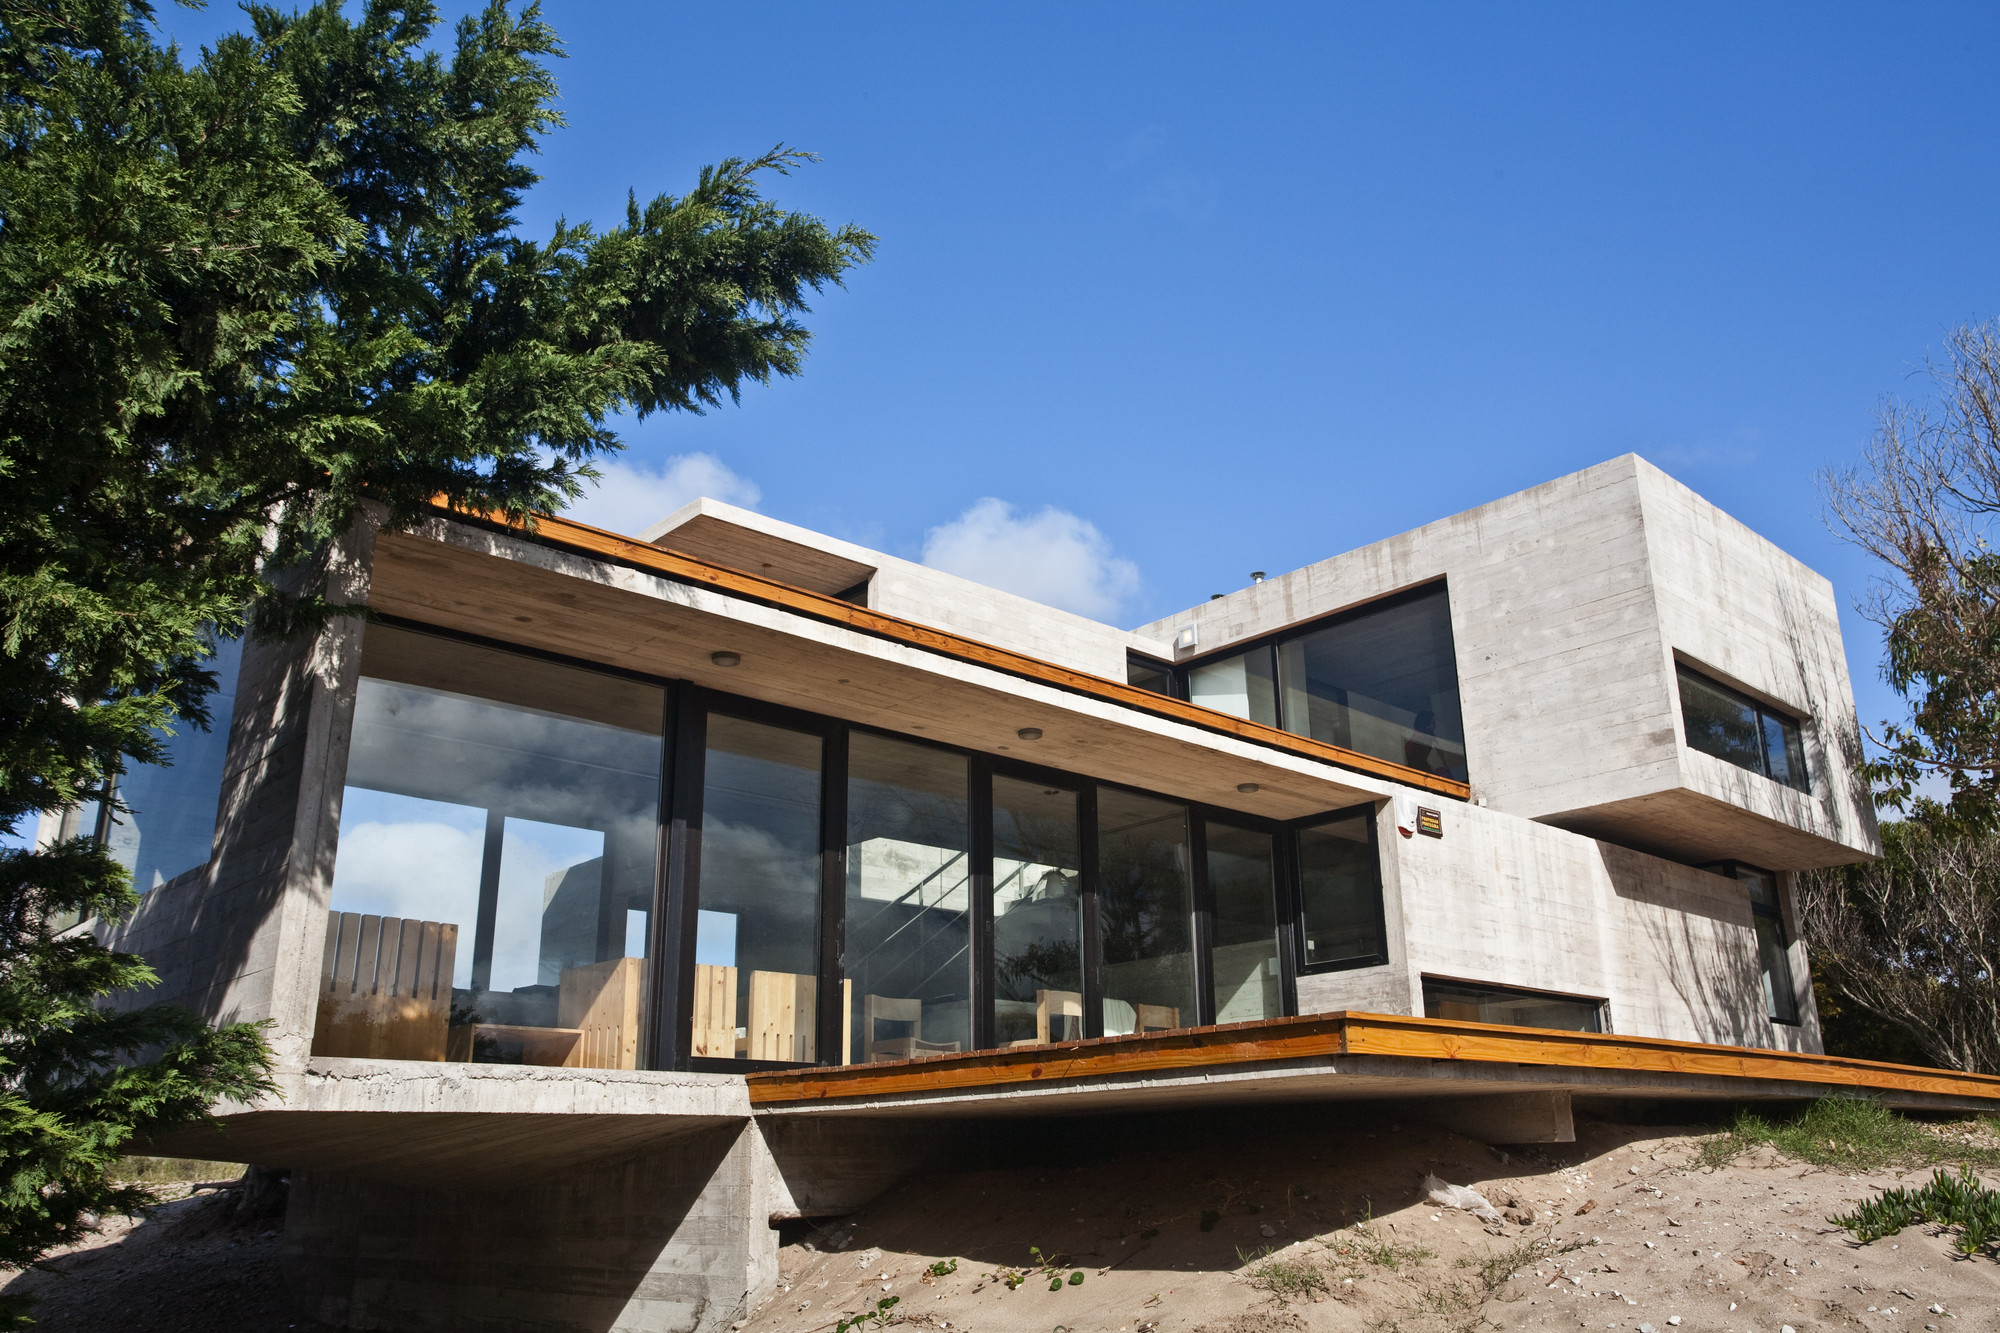 Gallery of House On The Beach / BAK Architects - 2